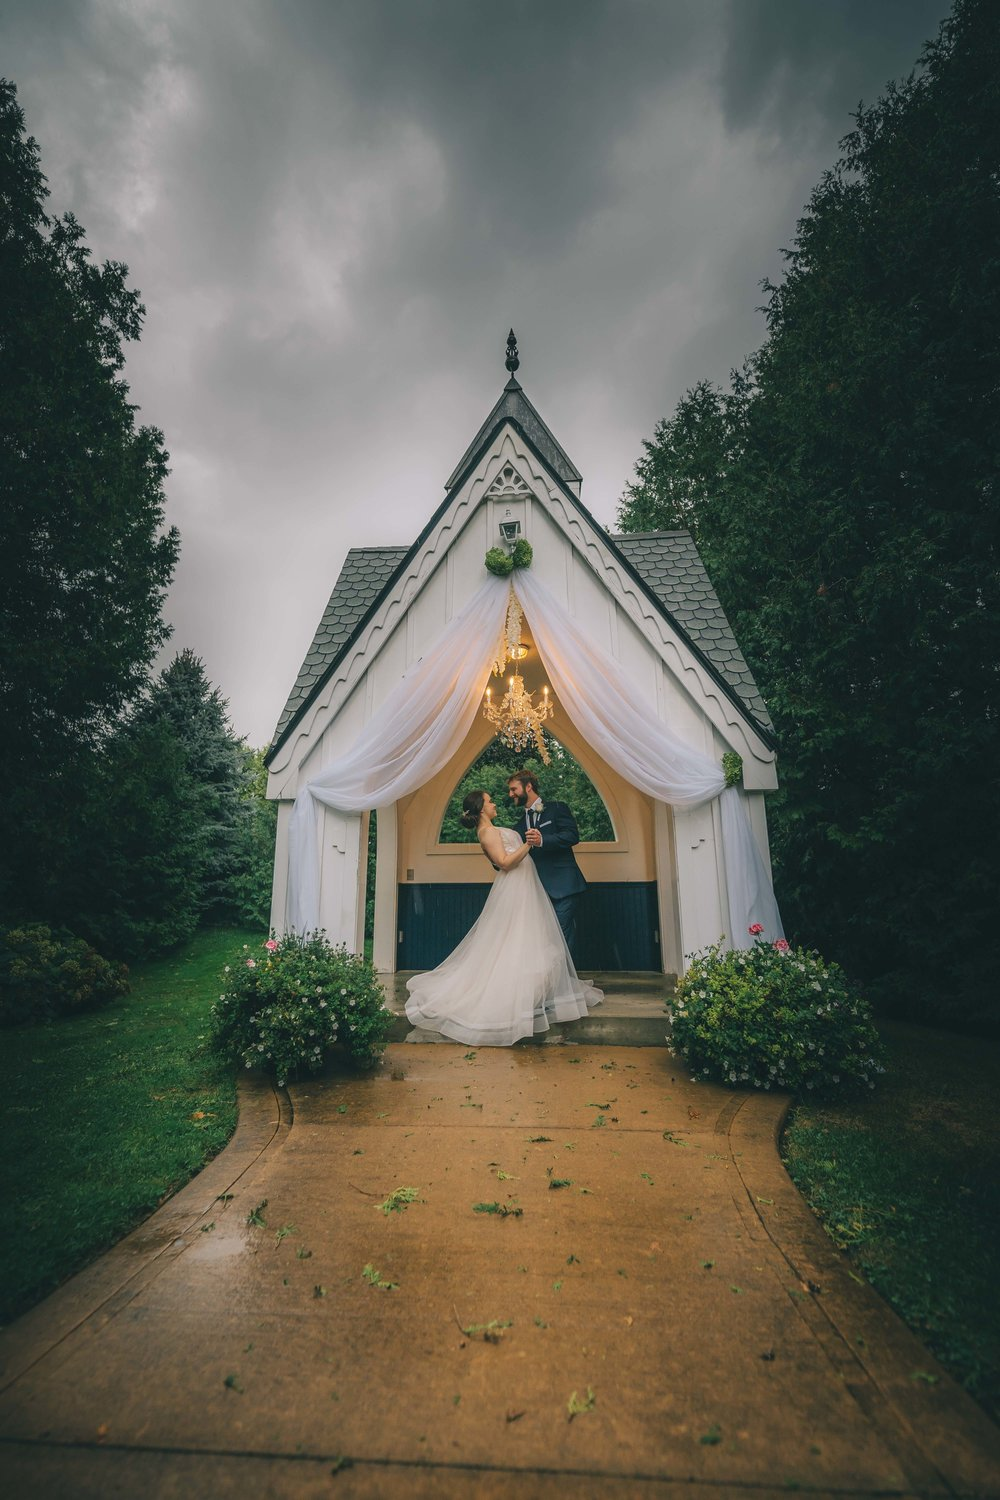 """Dustin was fantastic to work with! From our initial phone call with Dustin, we knew he and his team would be a great fit. We had a rough weather day for our wedding, but that didn't stop the creativity and willingness to still get the perfect shots. We were so happy with our experience from start to finish!"" - Rebecca + Rob (from WeddingWire)"